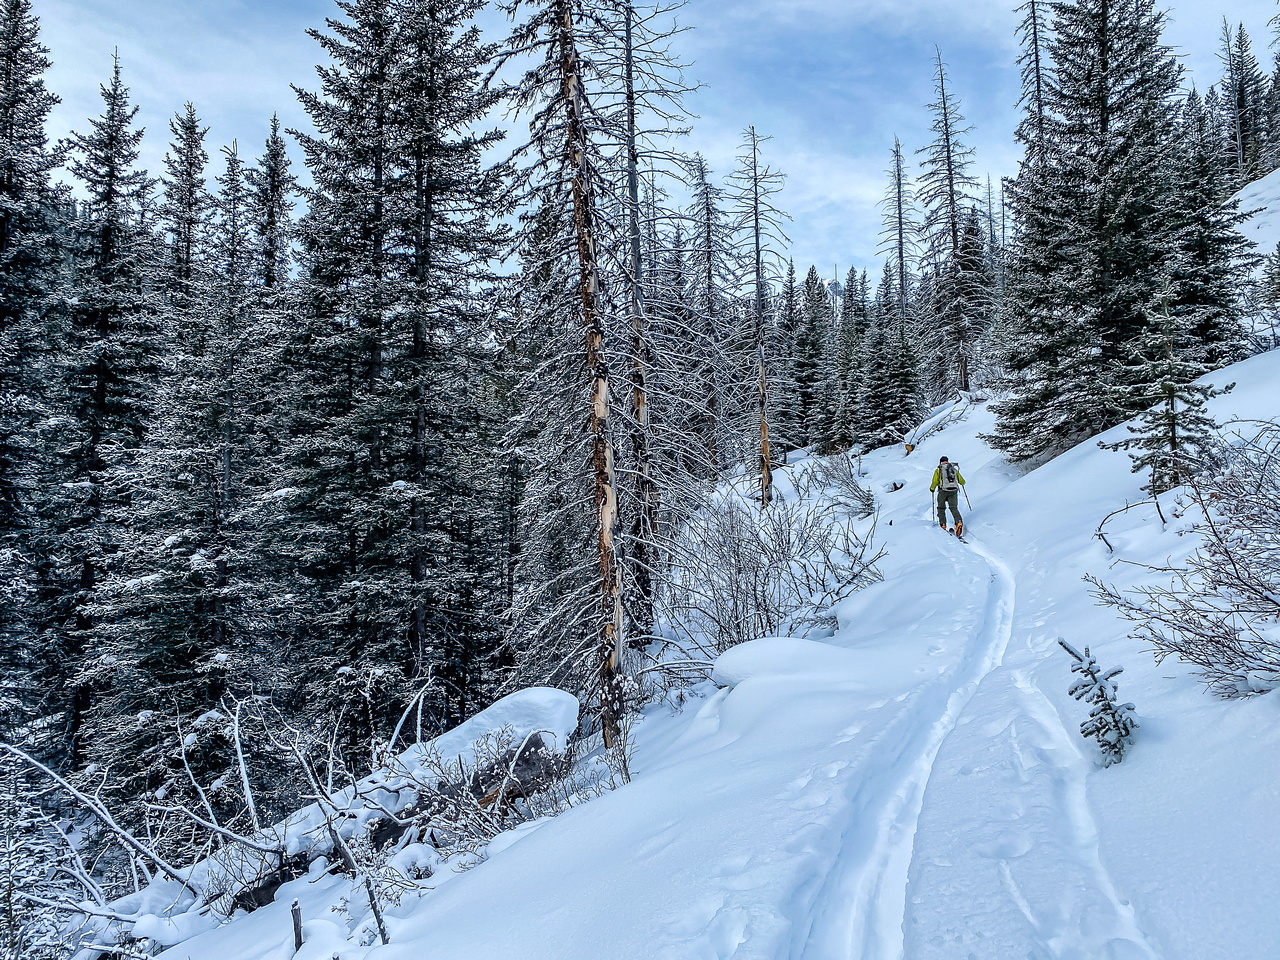 Skiing up the Elk Pass Trail.